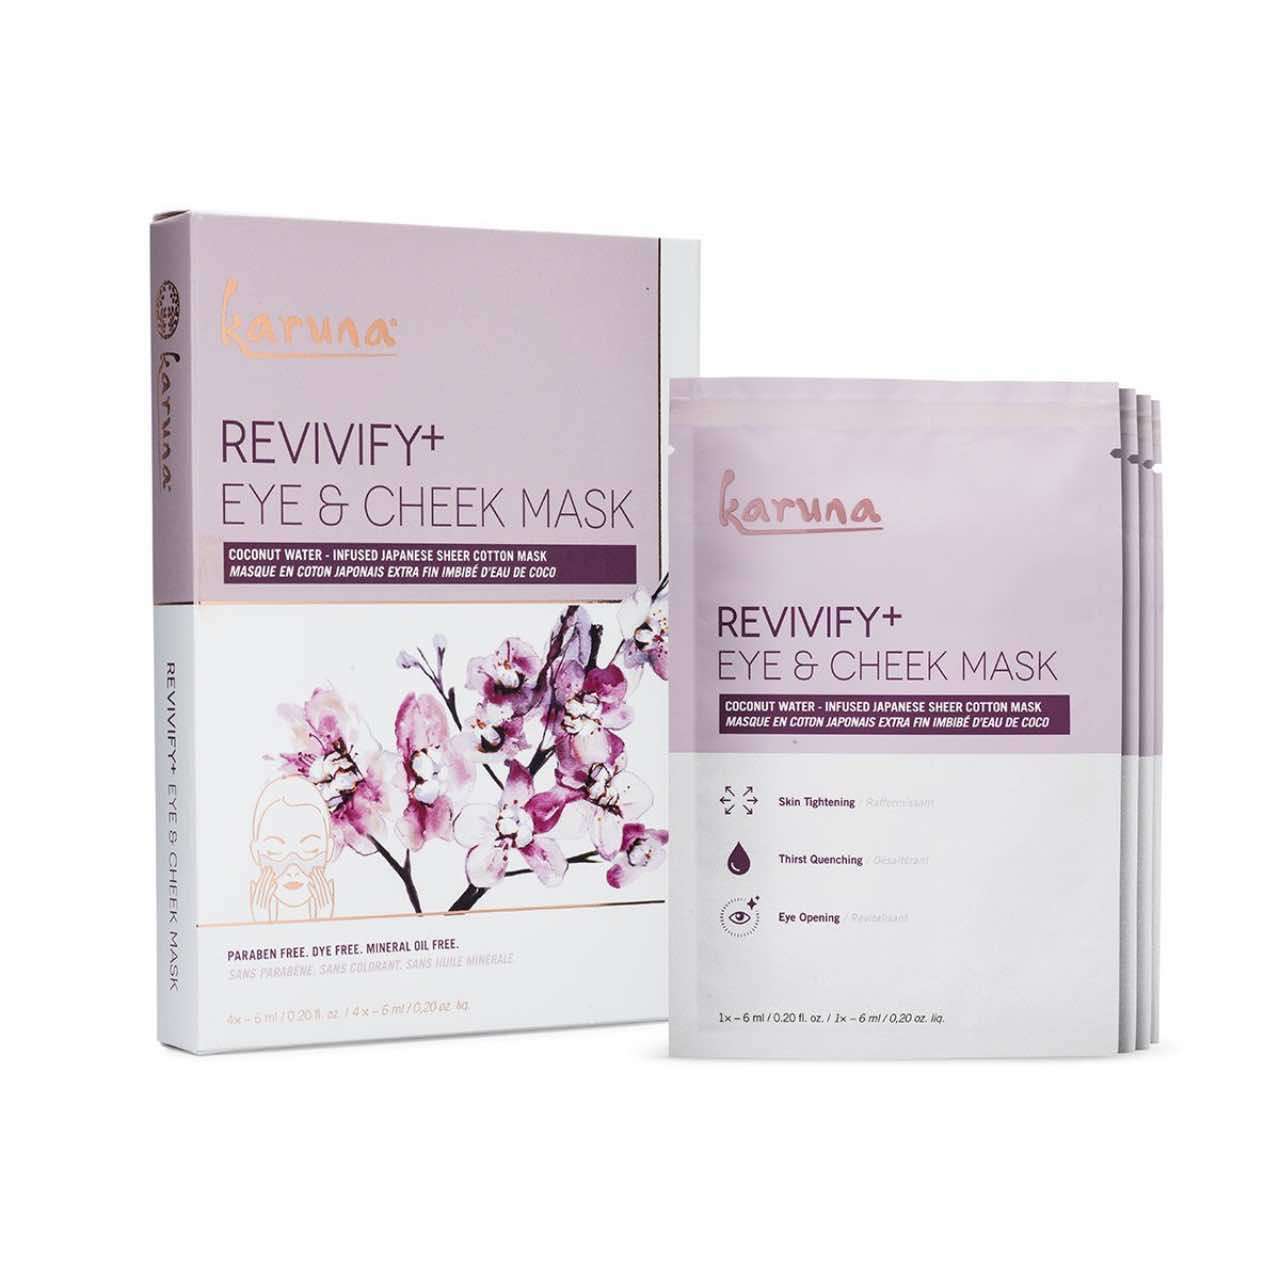 KARUNA Revivify+ Eye and Cheek Mask